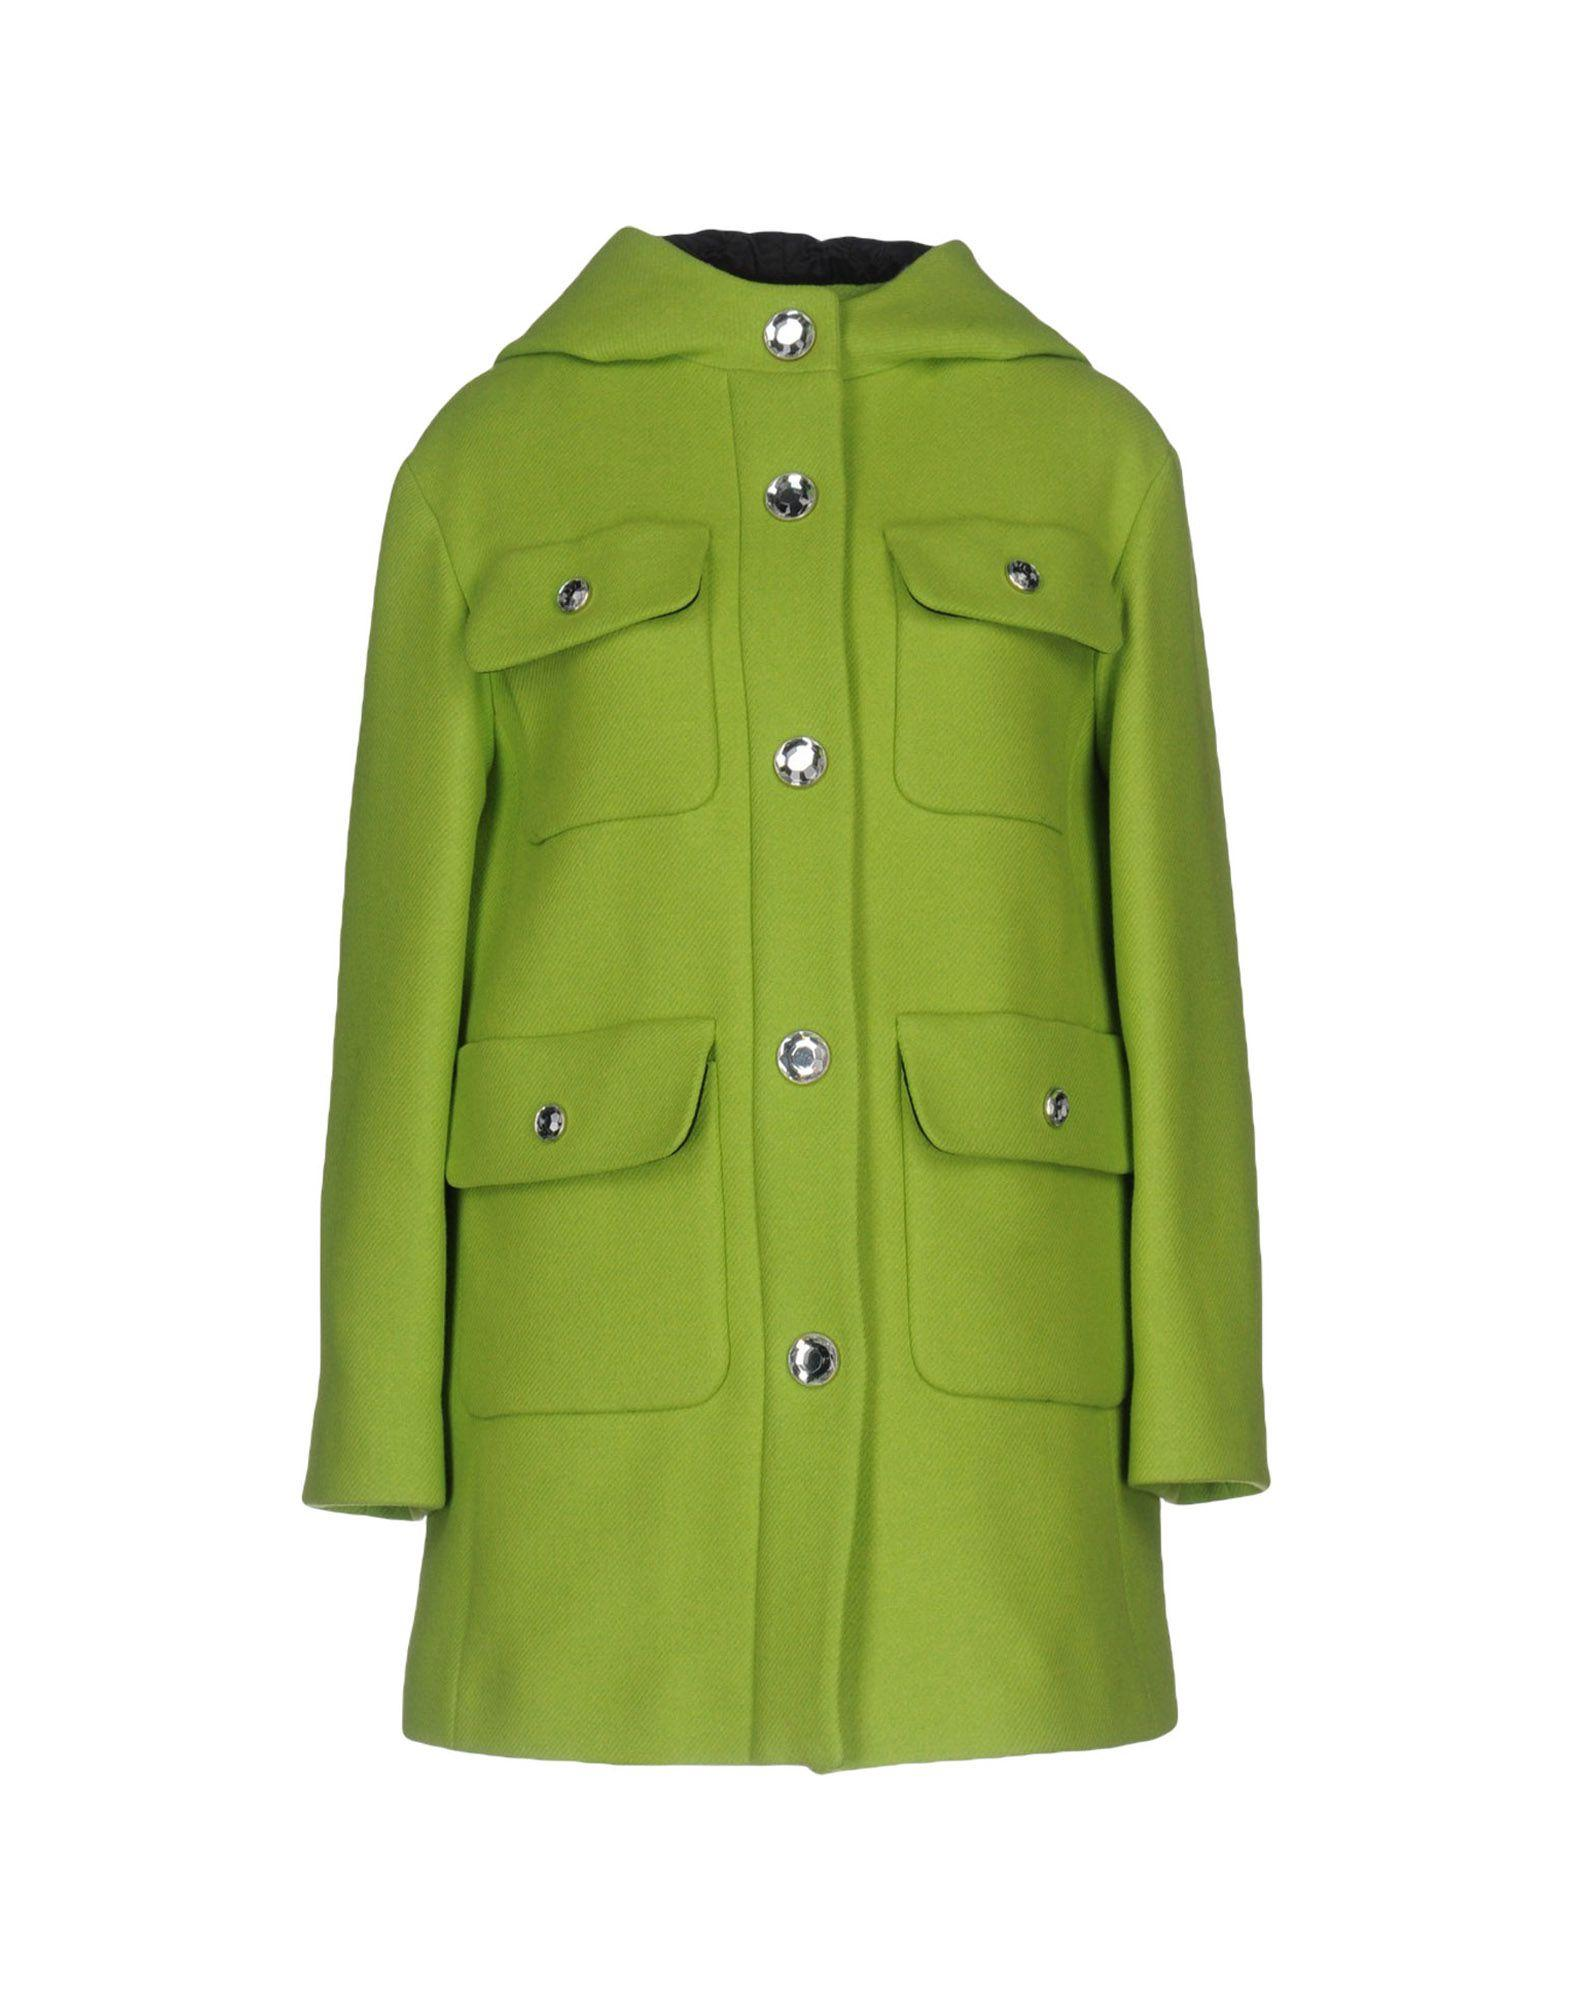 Moschino Cheap And Chic Coats In Acid Green